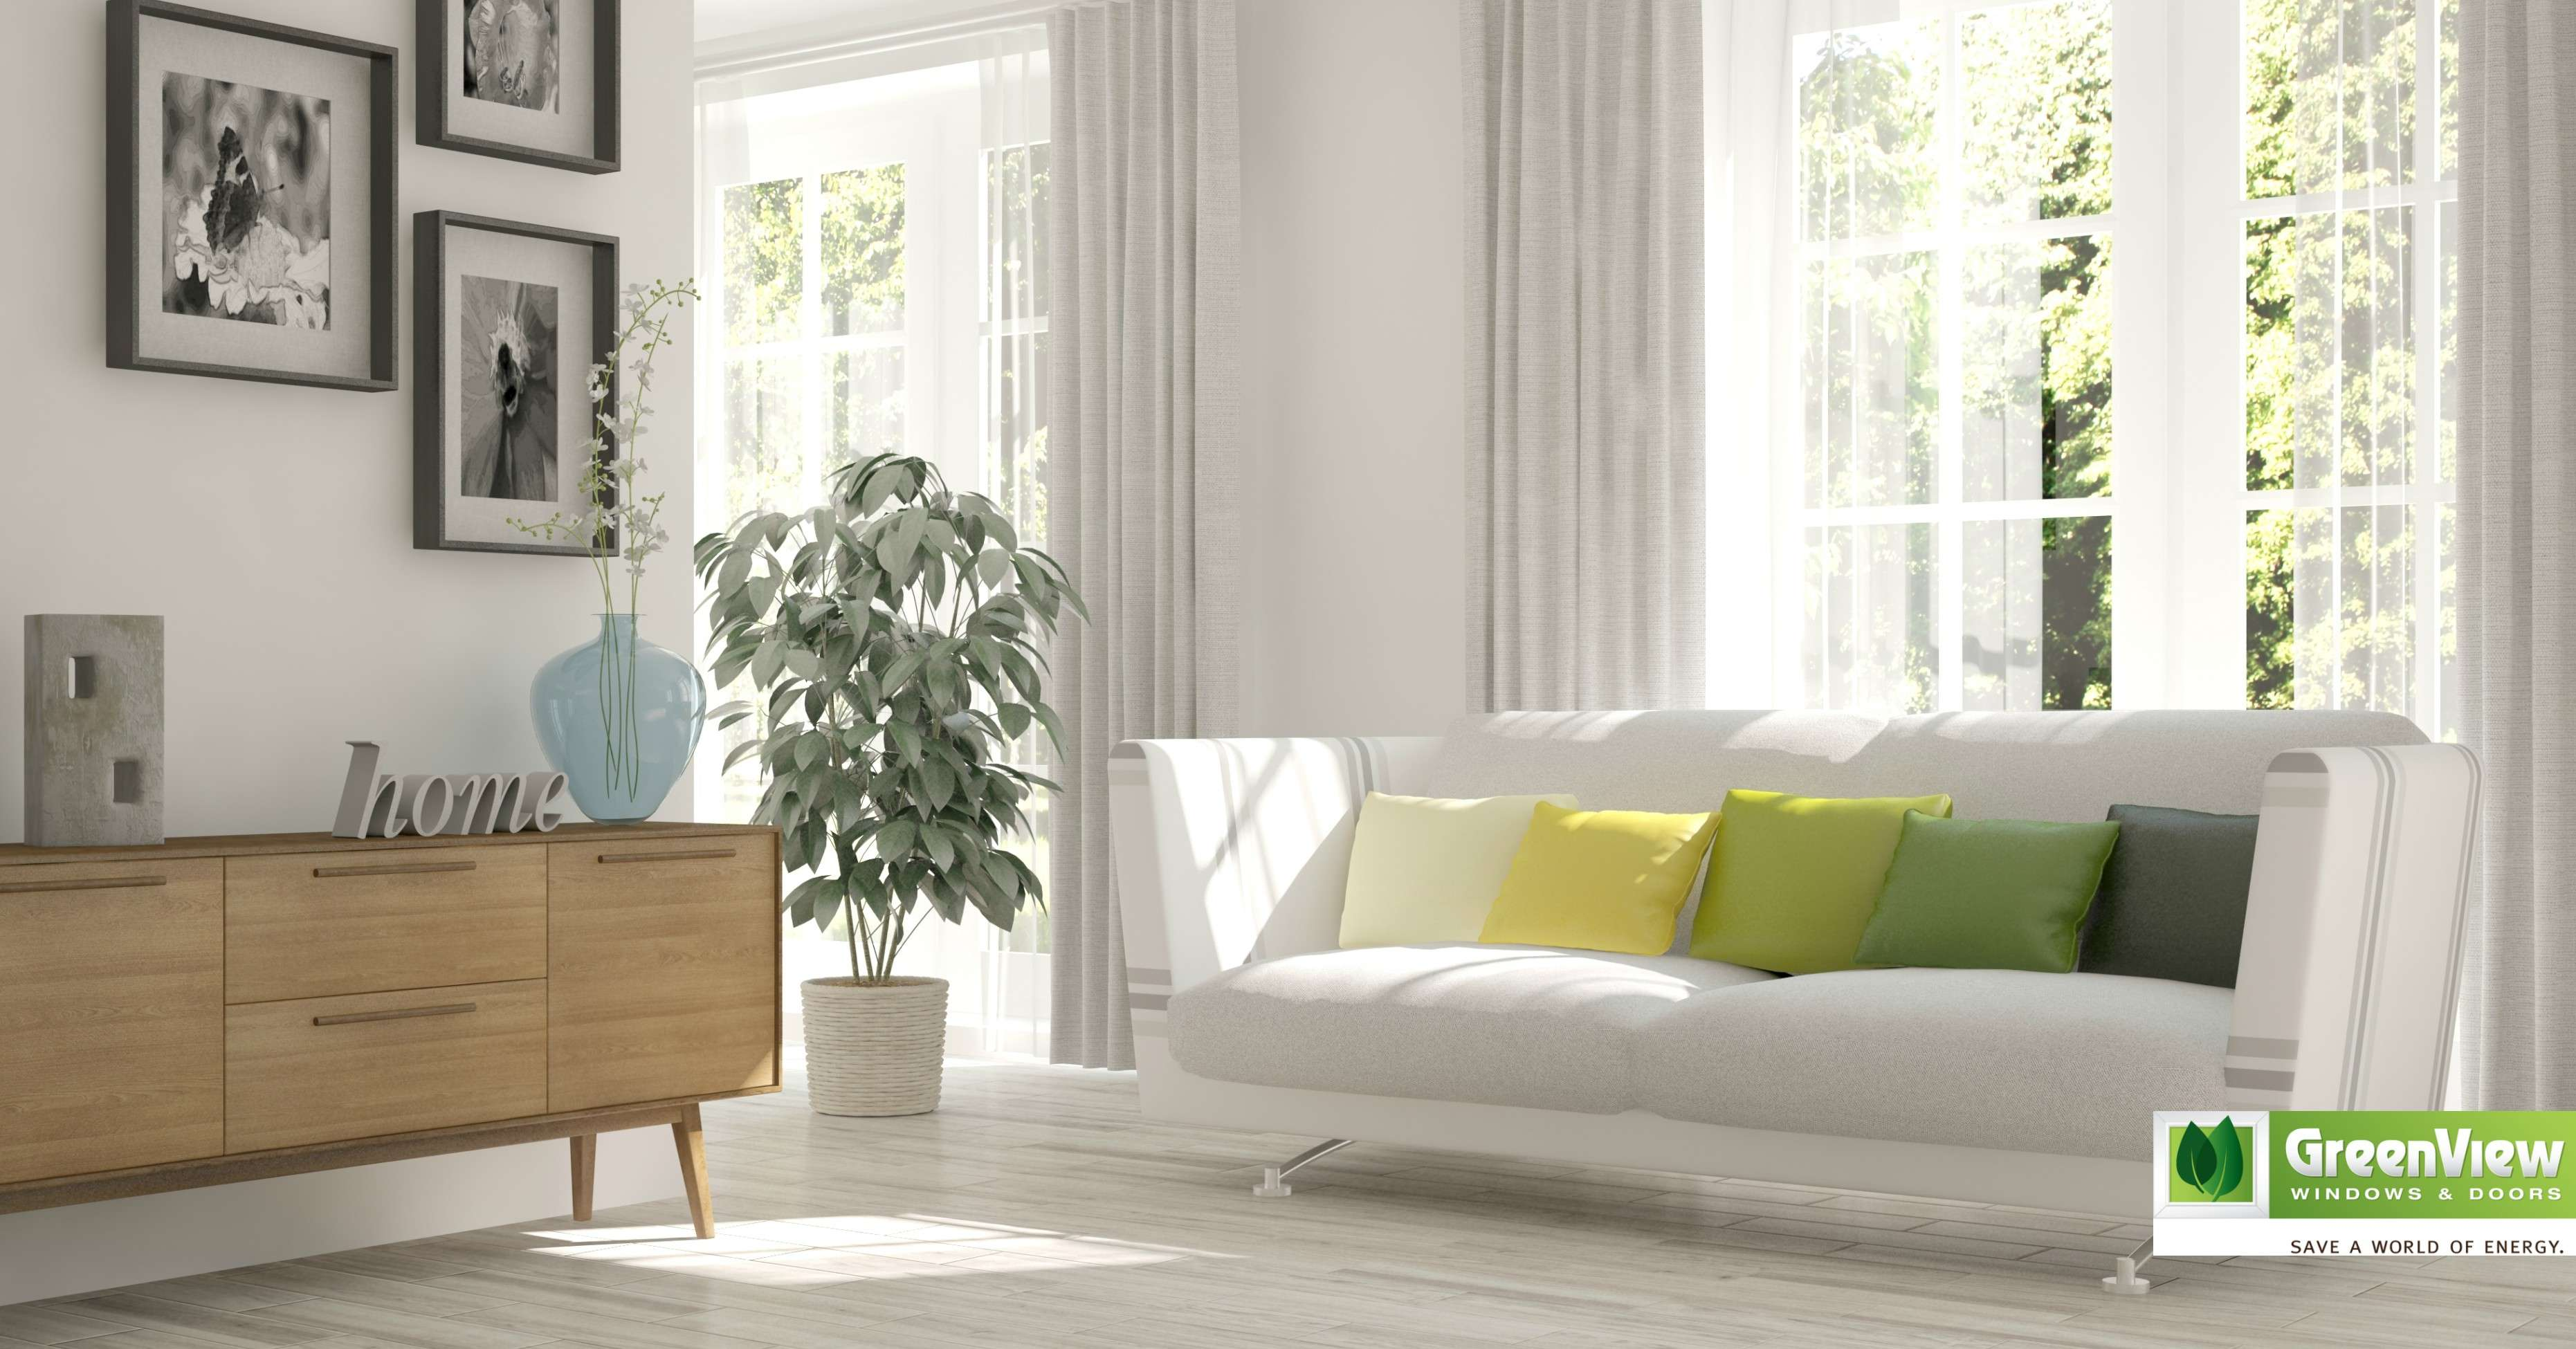 A white and bright living room with a big window covered with white curtains.